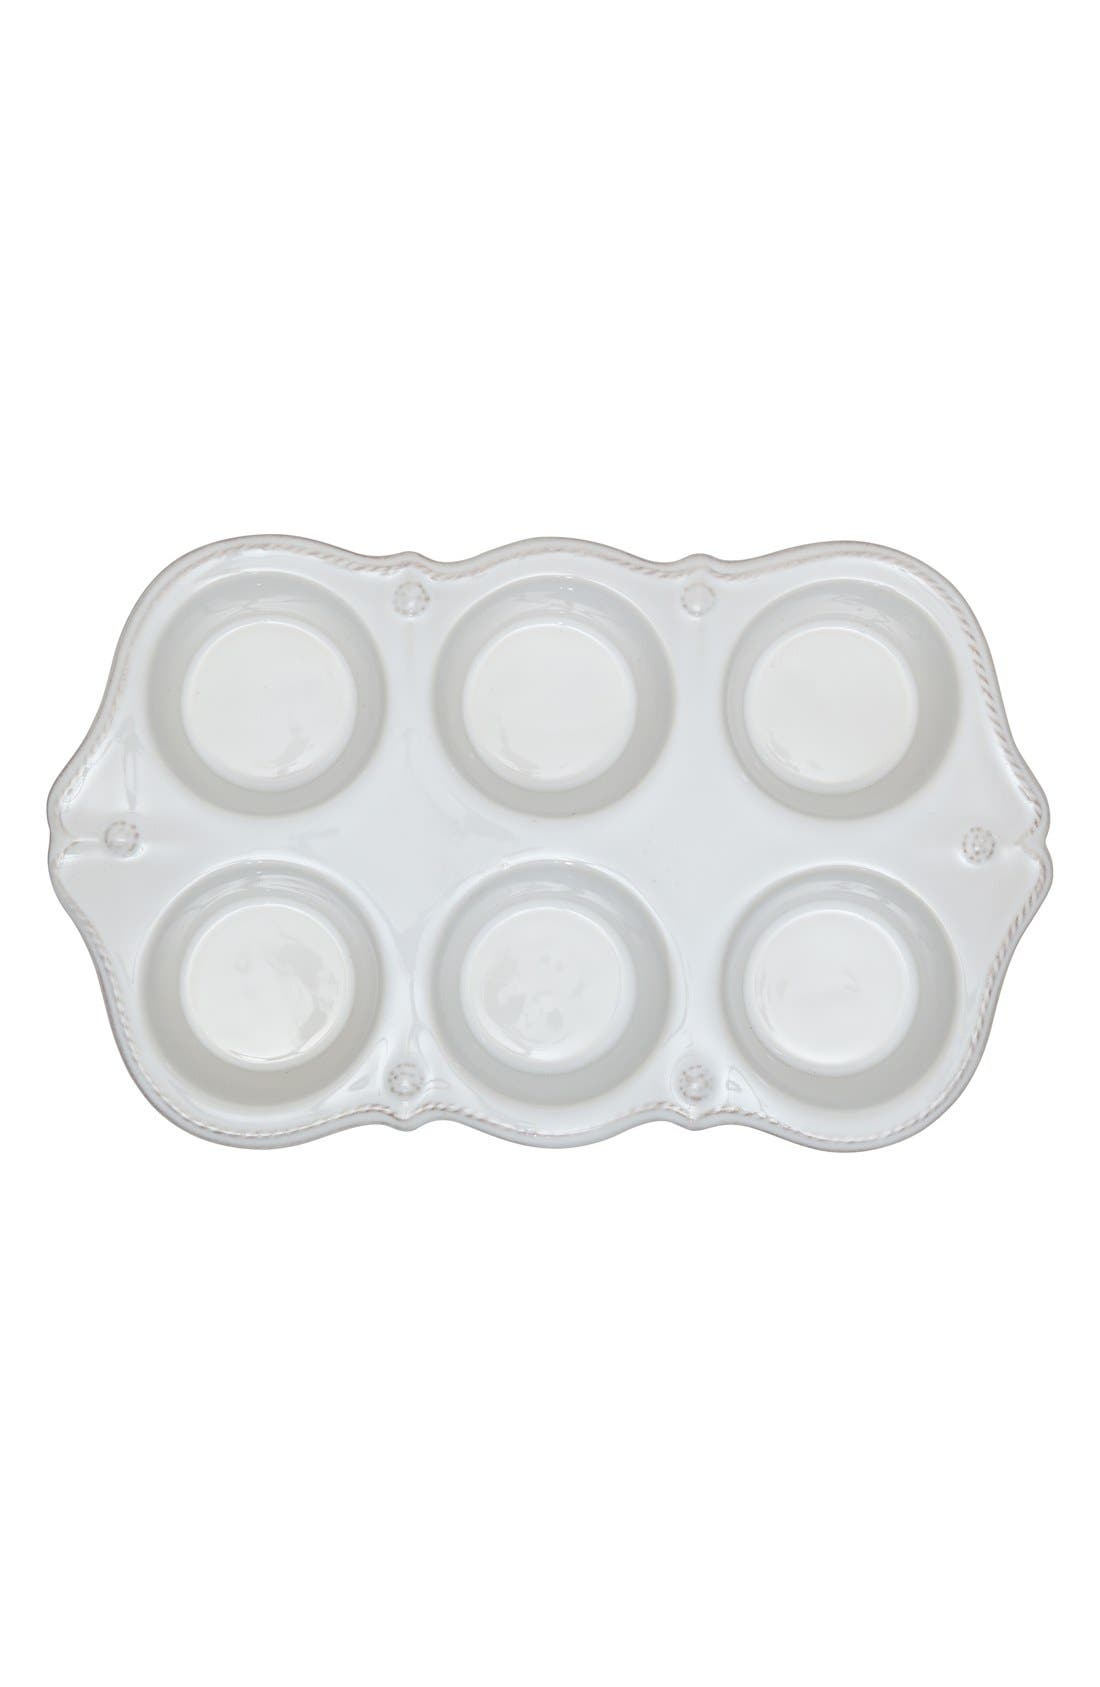 'Berry and Thread' Ceramic Muffin Pan,                         Main,                         color, Whitewash